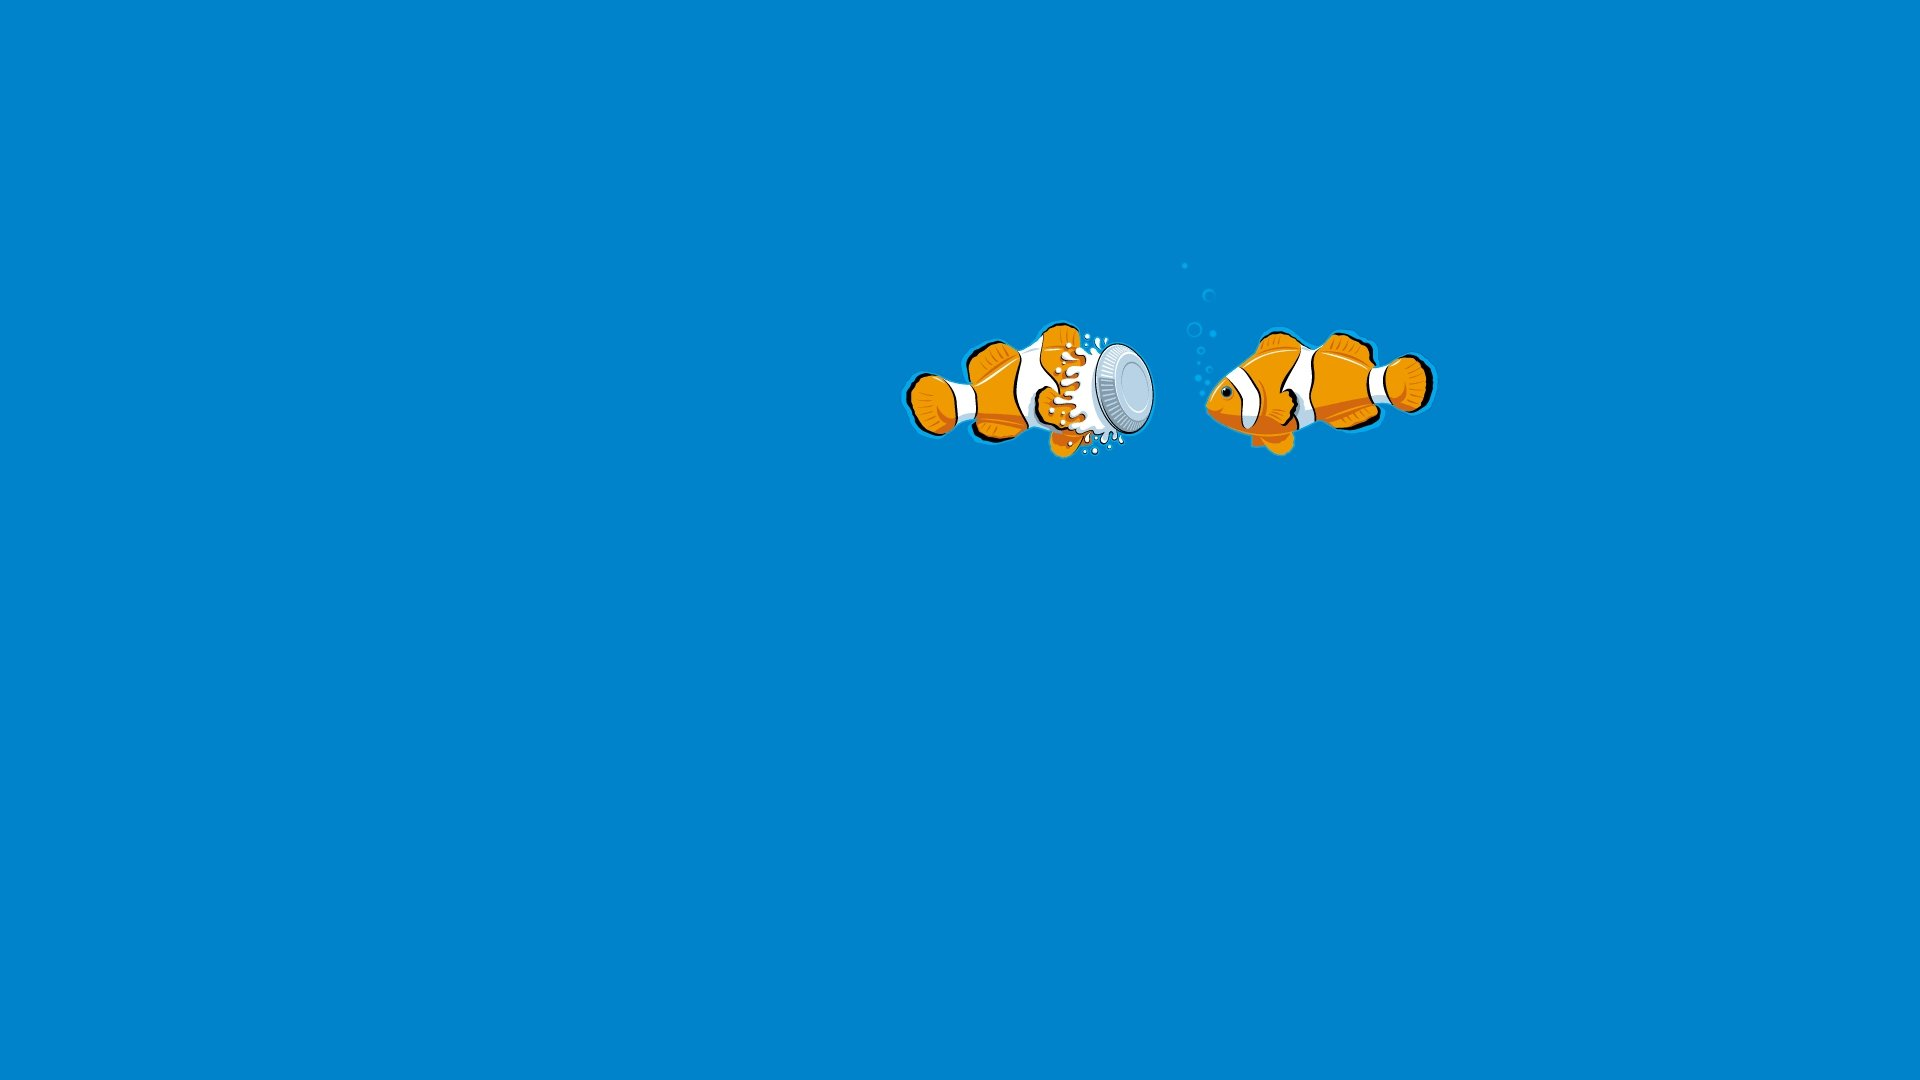 Blue Fish Underwater Clown Fish Pie humor funny ocean sea wallpaper 1920x1080